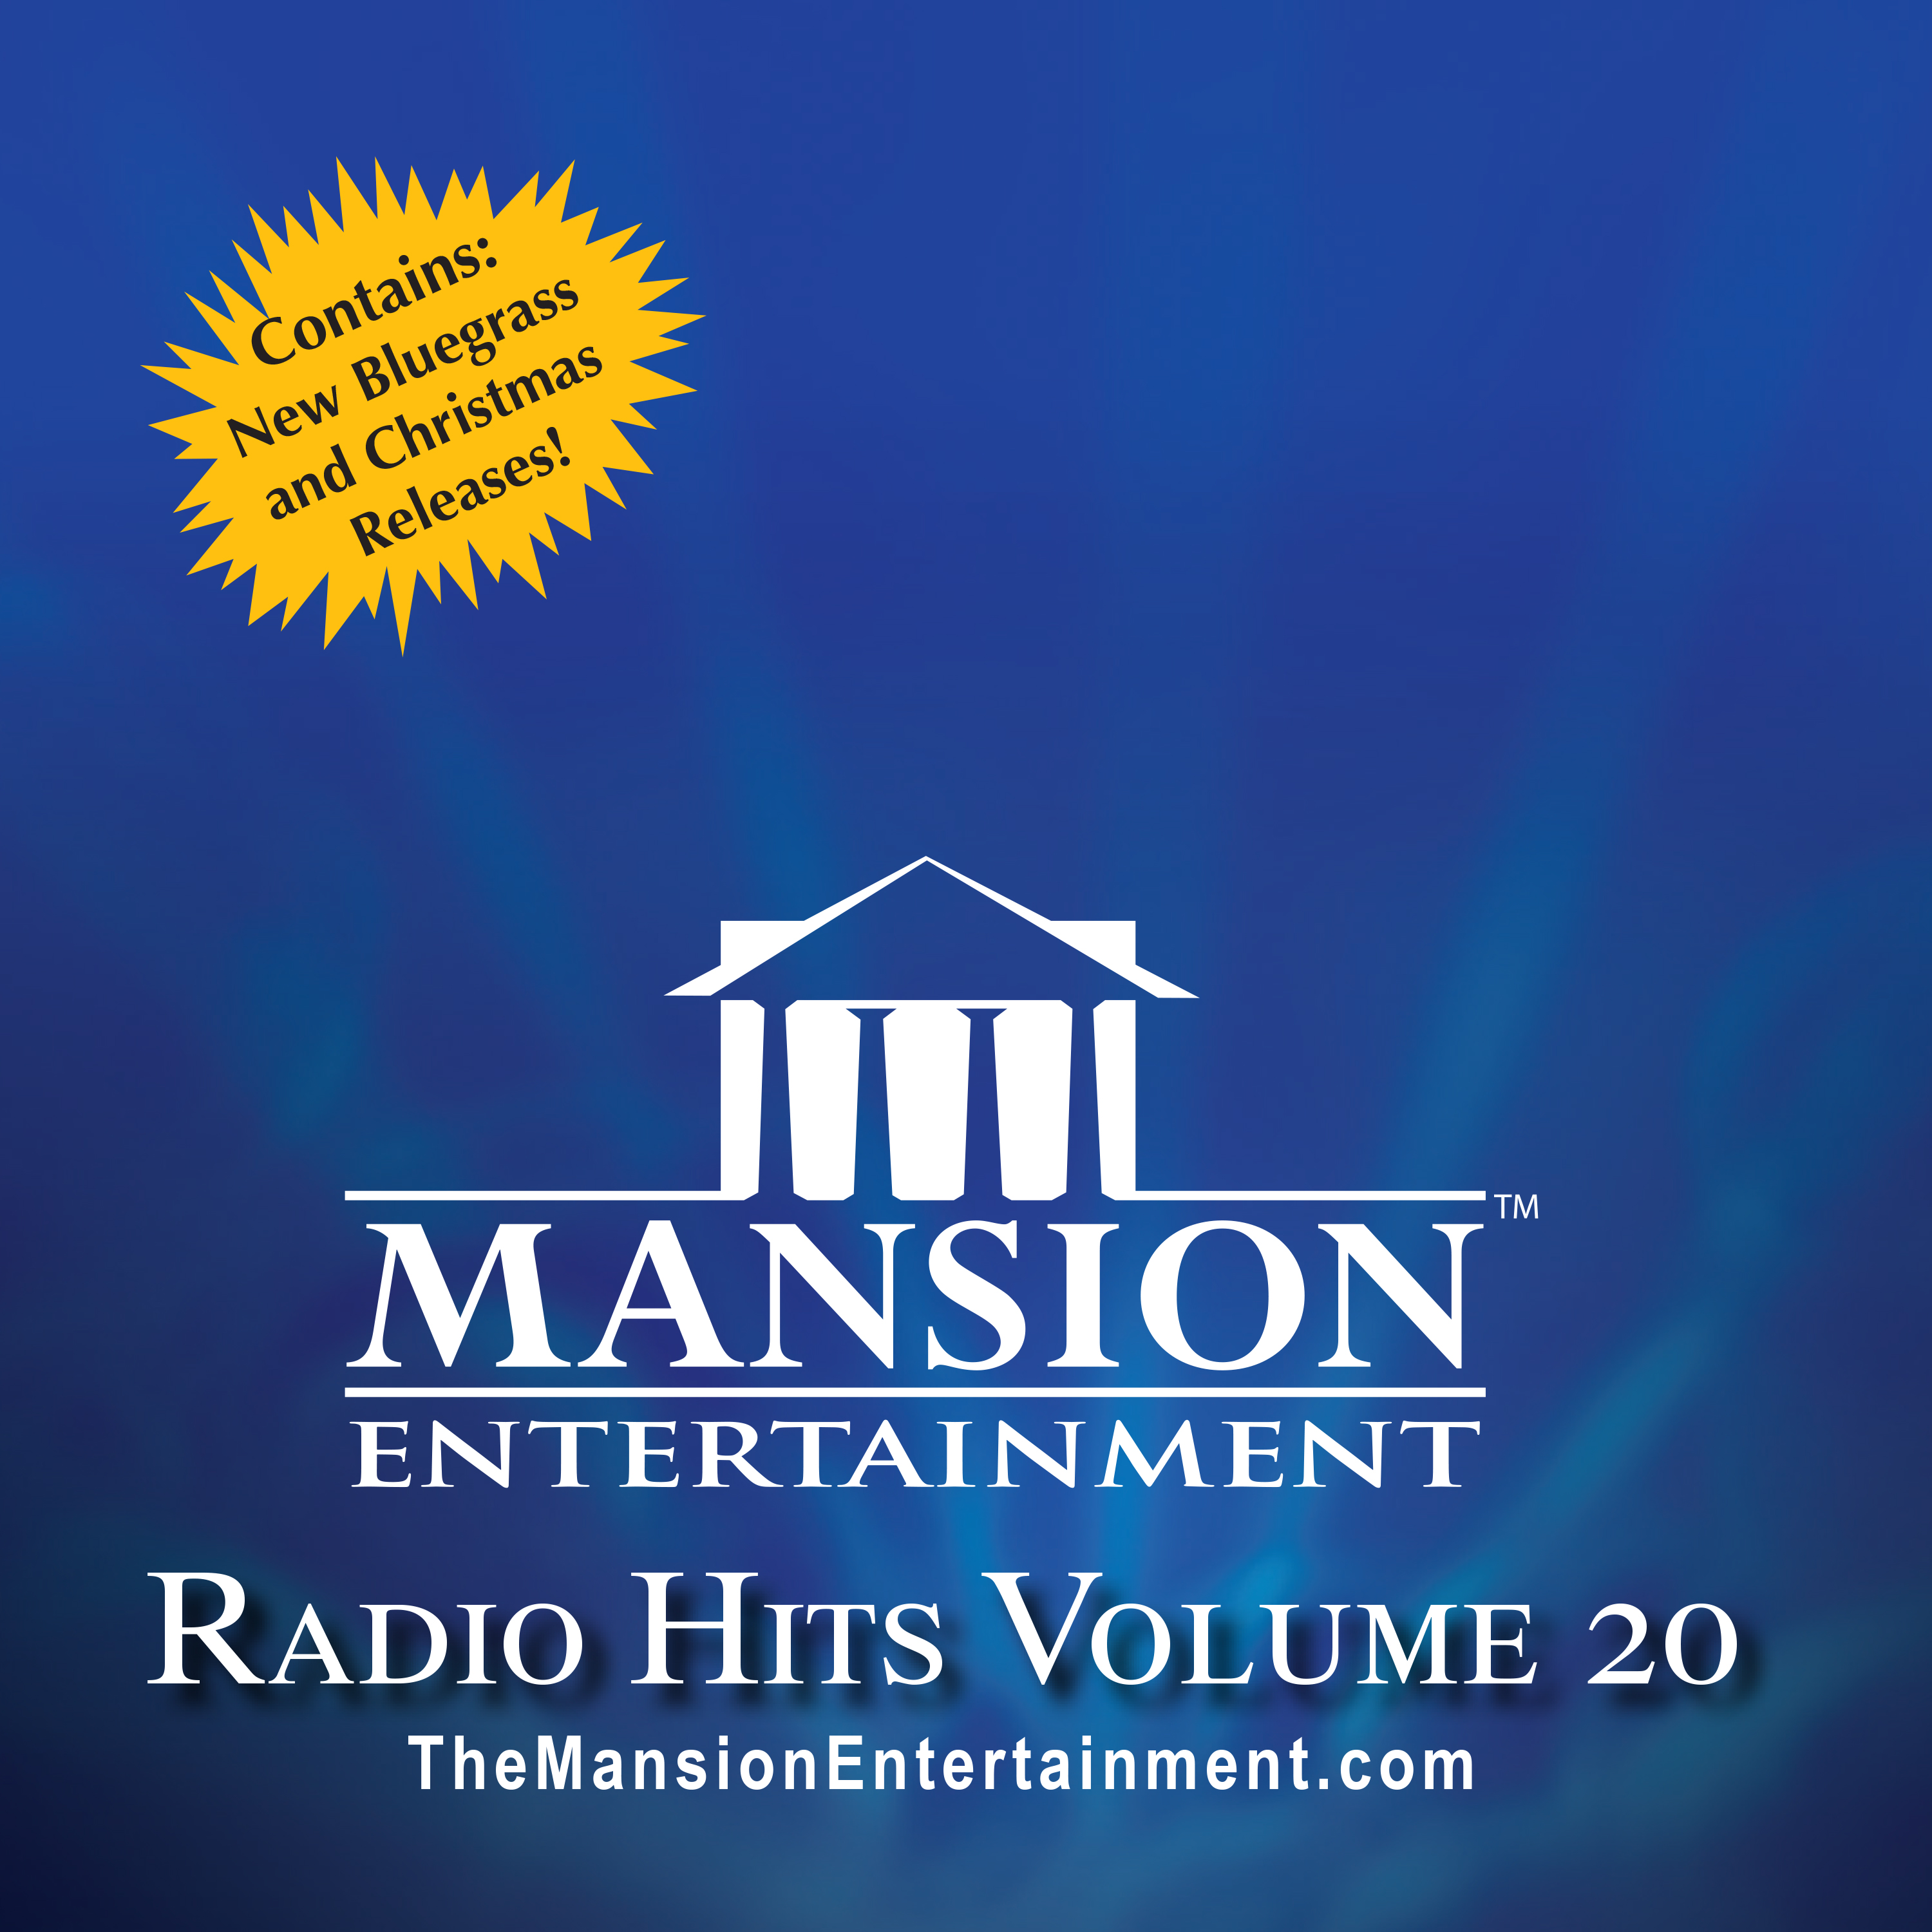 Mansion Entertainment Celebrates 10 Years of Radio Releases